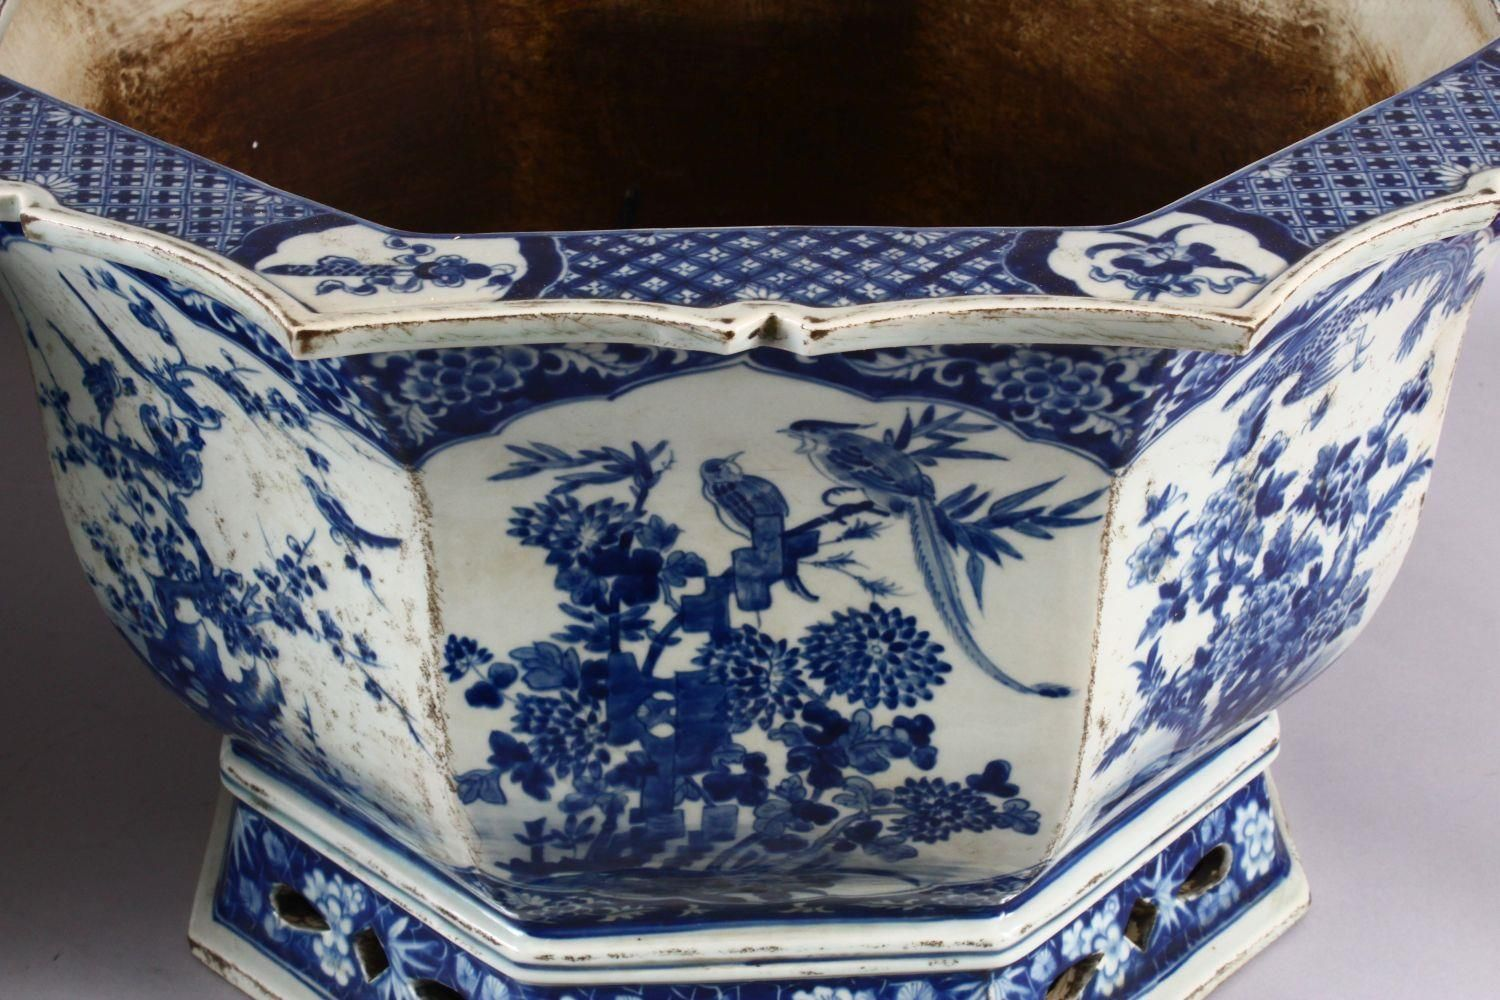 A PAIR OF LARGE CHINESE BLUE & WHITE OCTAGONAL PORCELAIN JARDINIERE / PLANTERS, decorated with - Image 4 of 8